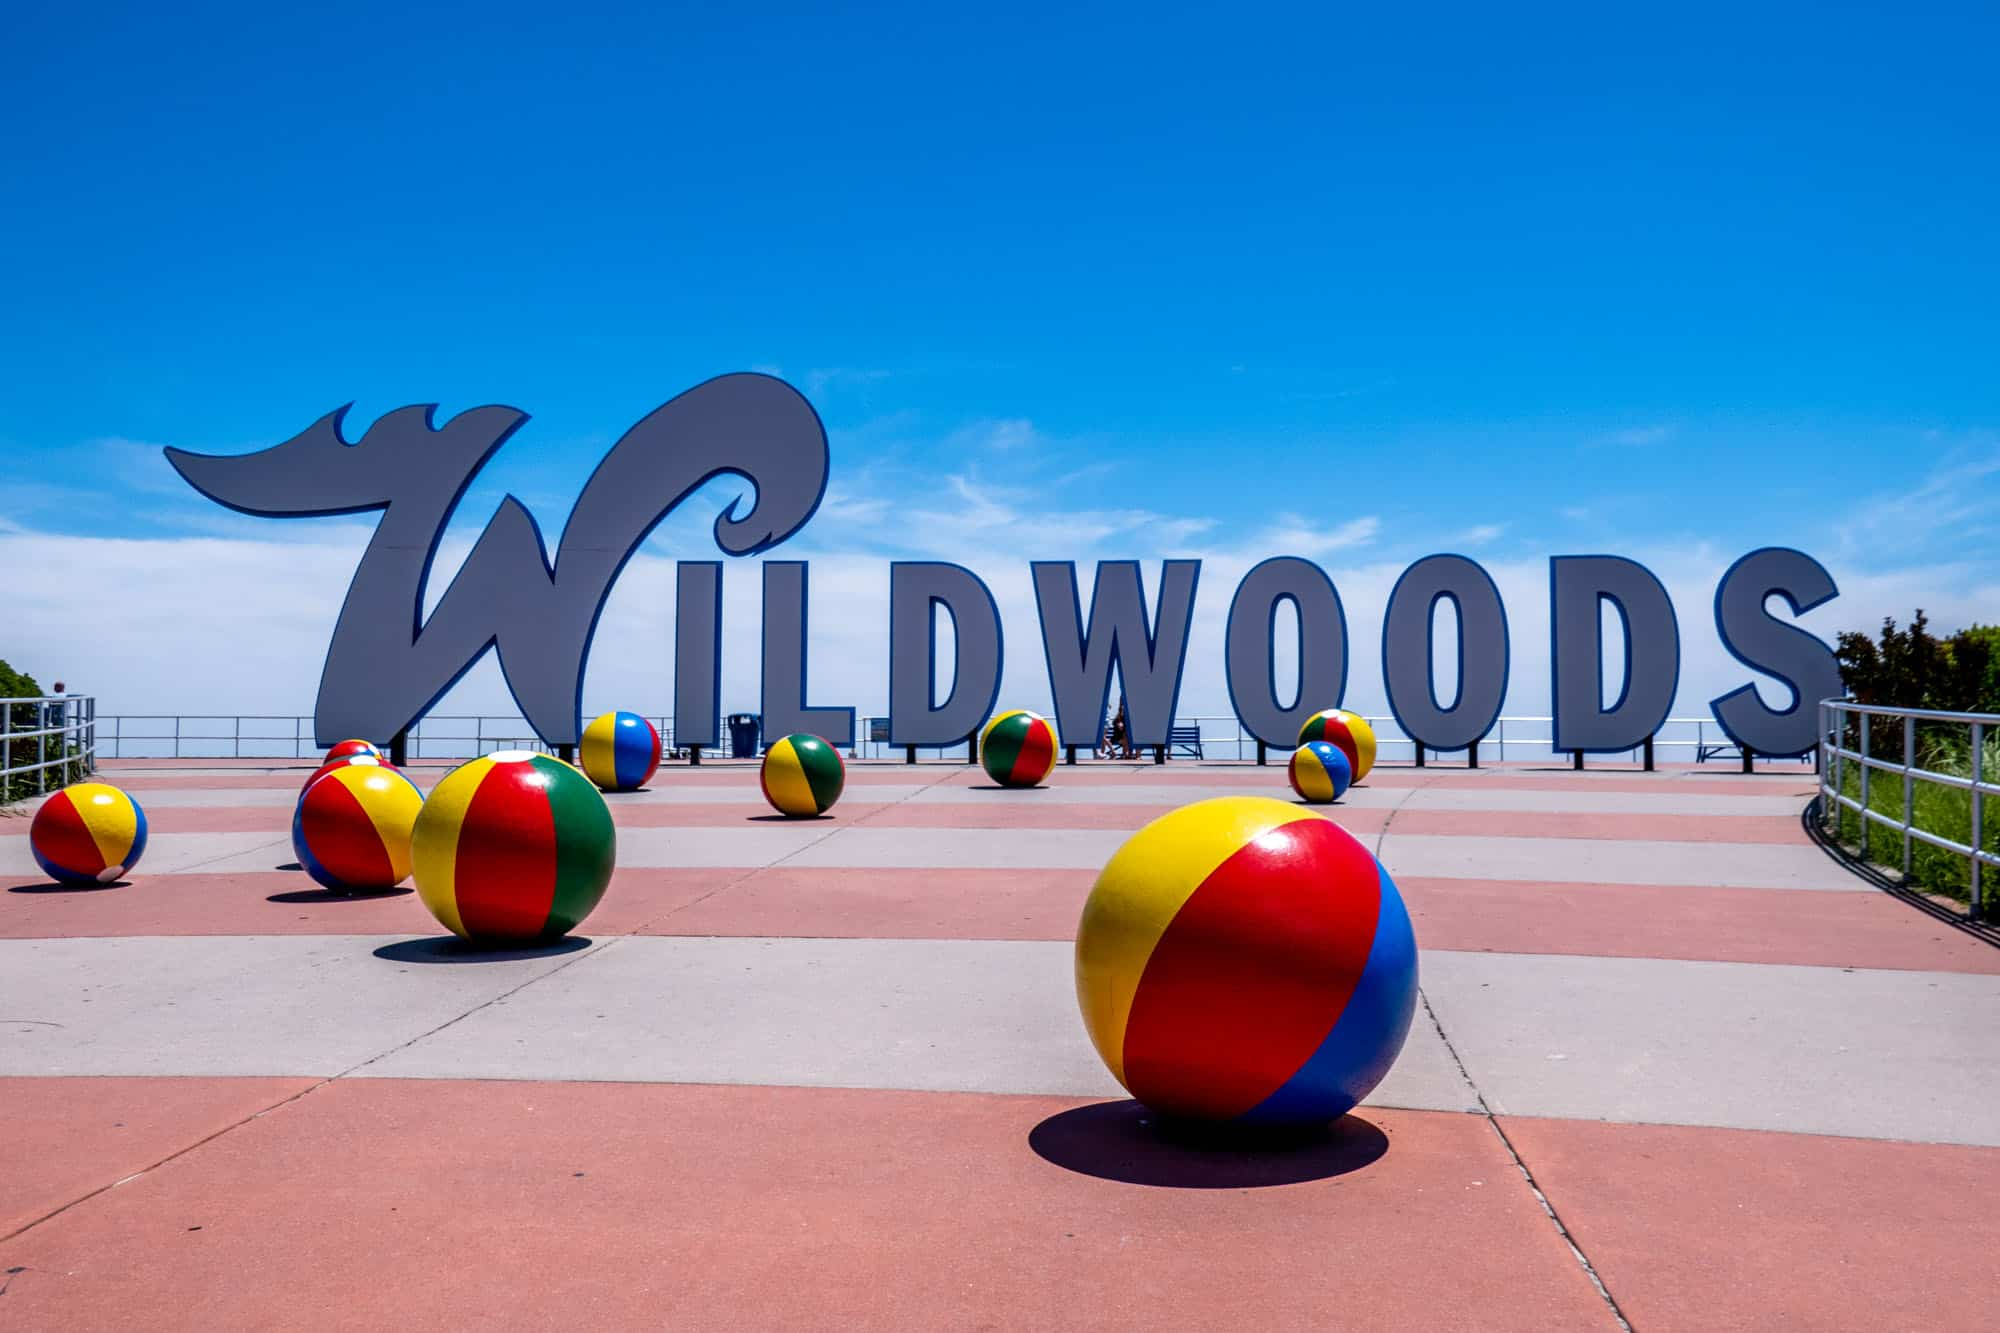 """The """"Wildwoods"""" sign with colorful beach balls on the sidewalk"""